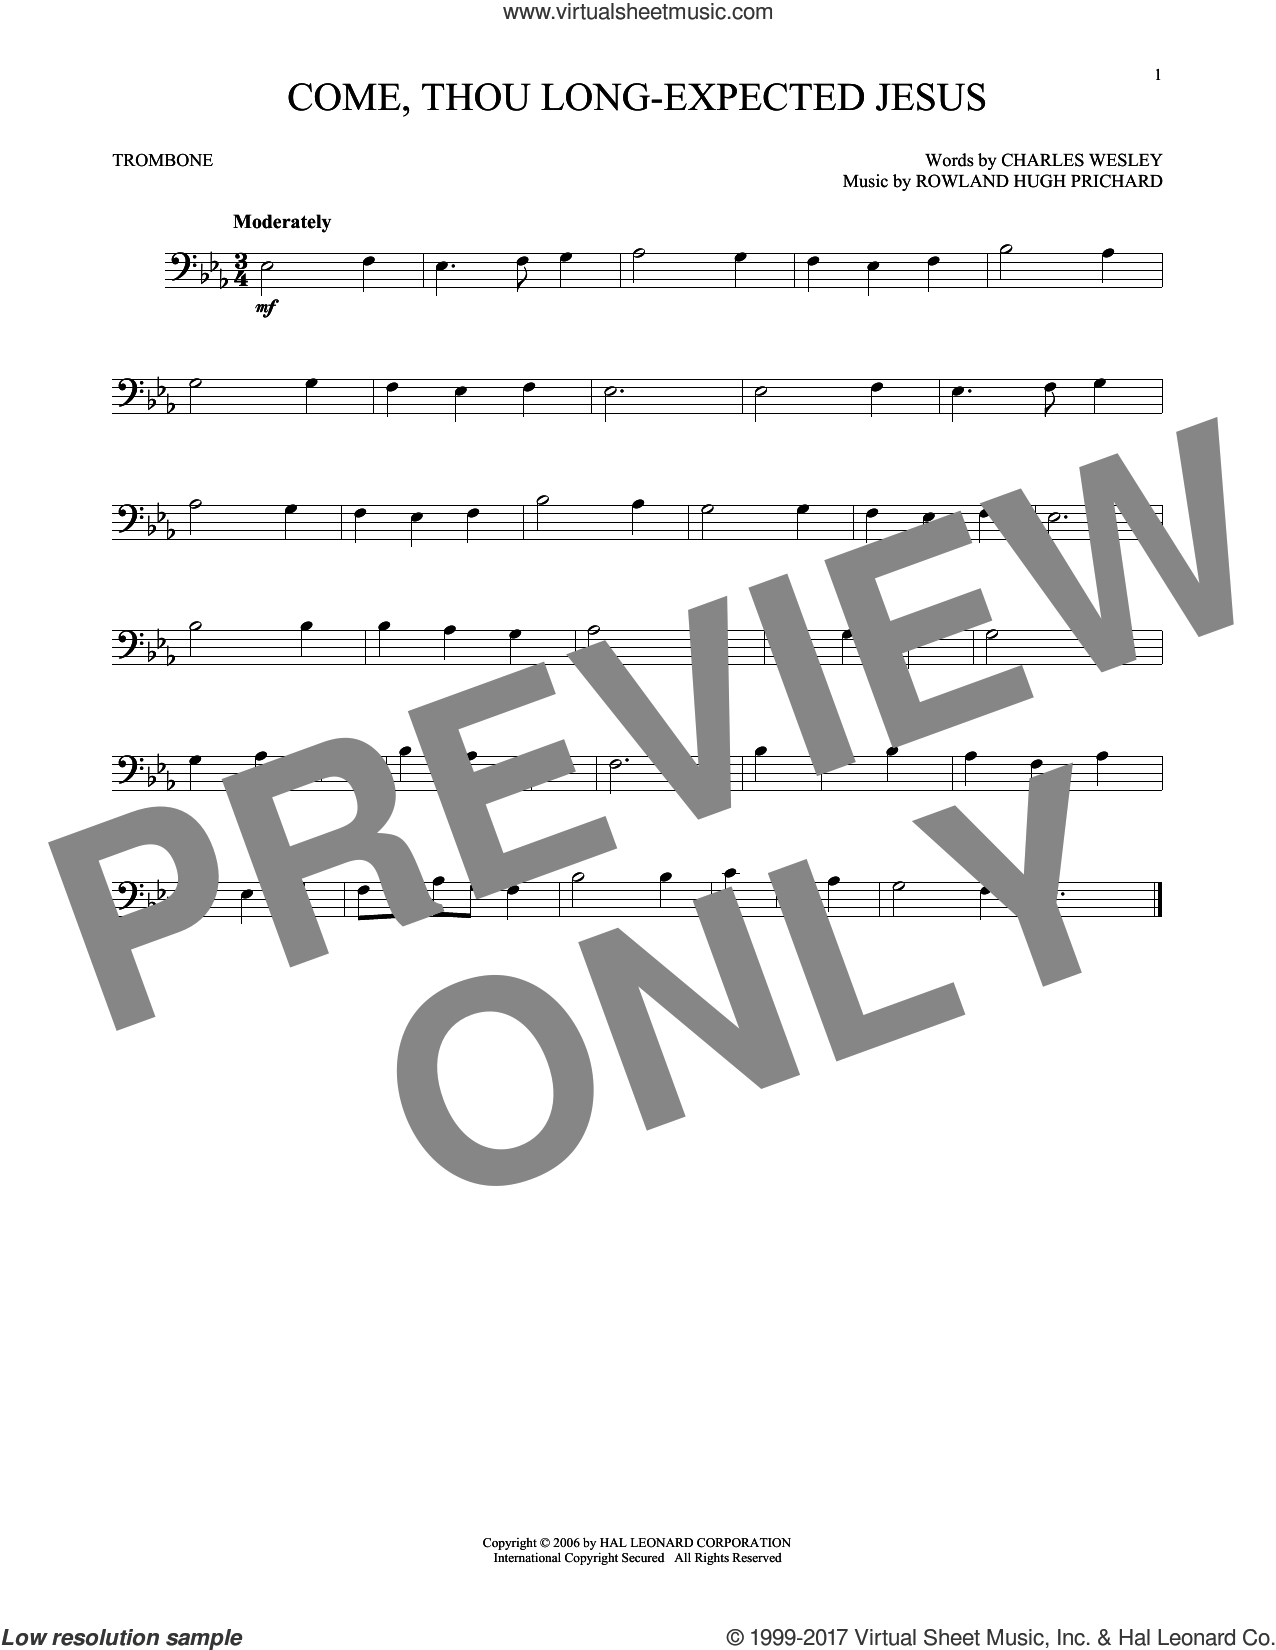 Come, Thou Long-Expected Jesus sheet music for trombone solo by Charles Wesley and Rowland Prichard, intermediate skill level